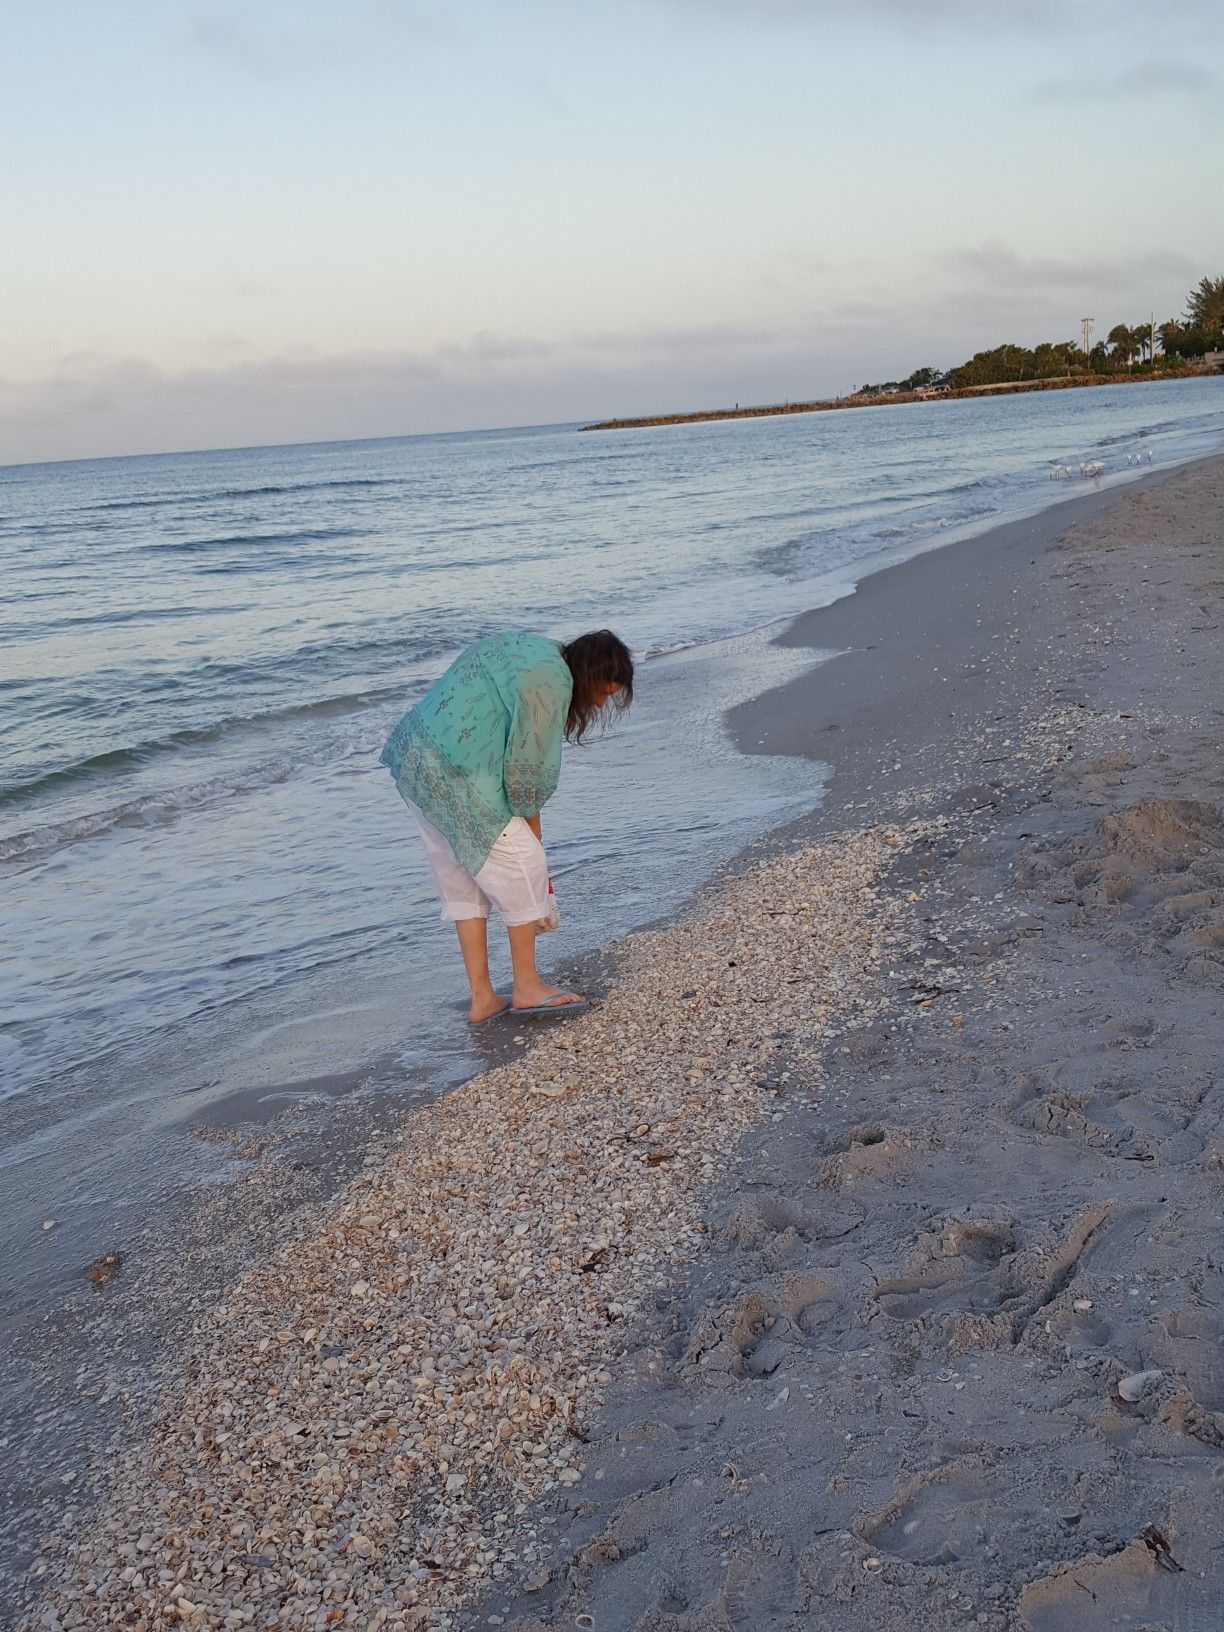 Doing The Sanibel Stoop Shelling At Blind P Beach Island Florida 11 12 17 Photo Taken By Jeff Welsh